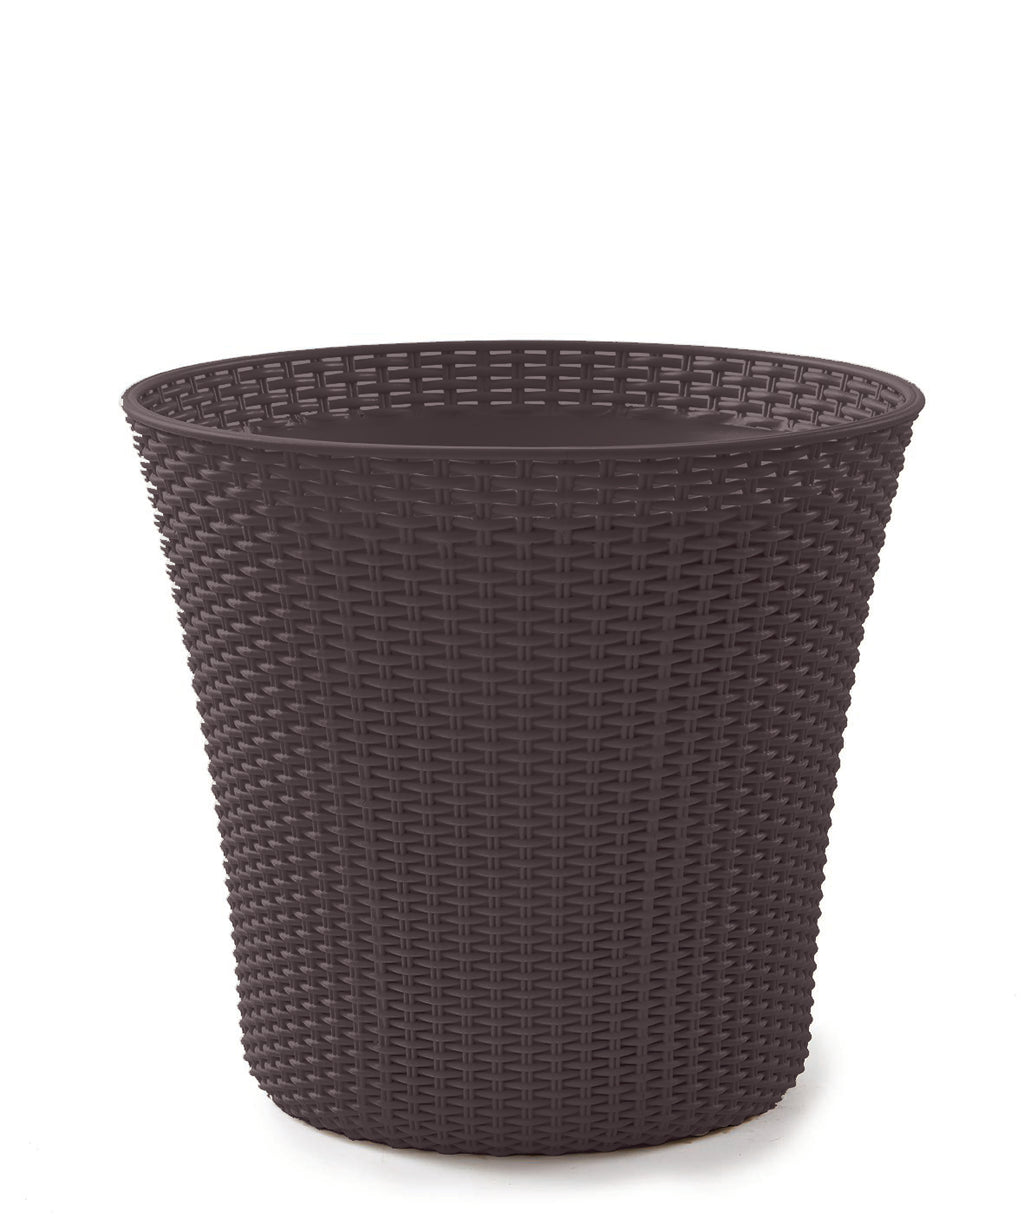 Conic Resin Rattan Planter, Whiskey Brown